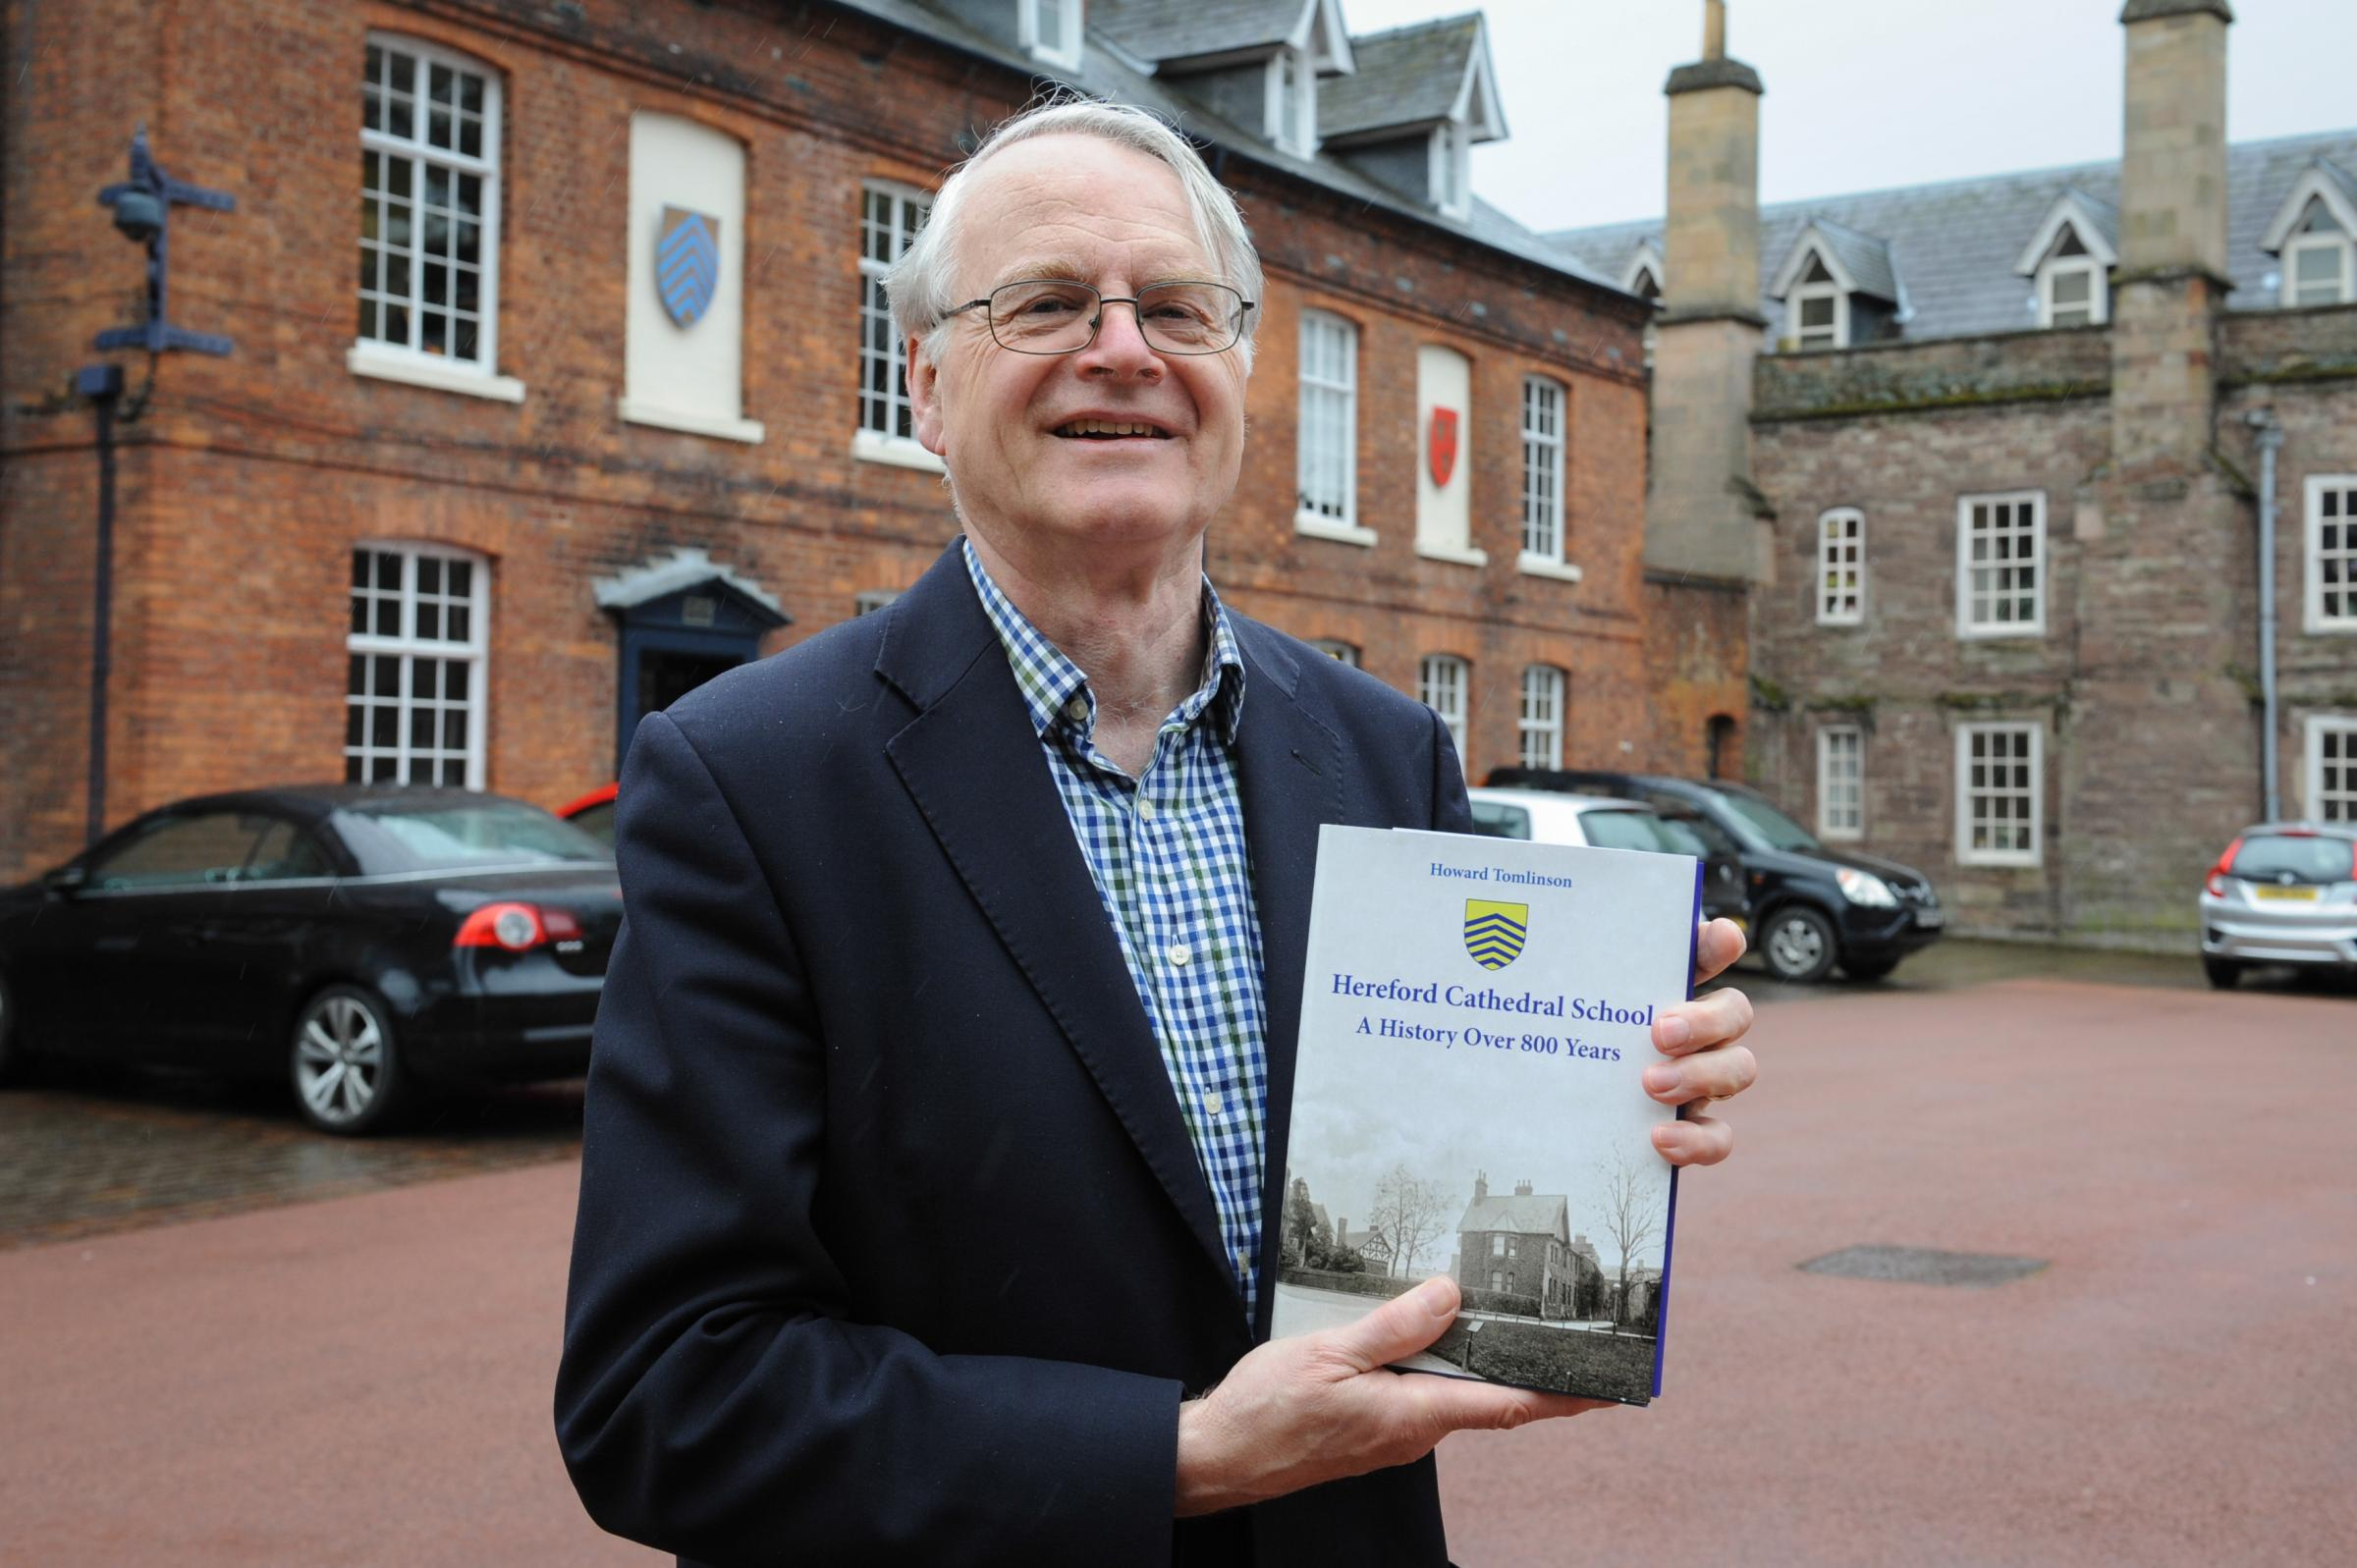 Former Hereford Cathedral School Headteacher Howard Tomlinson will address Hereford Civic Society